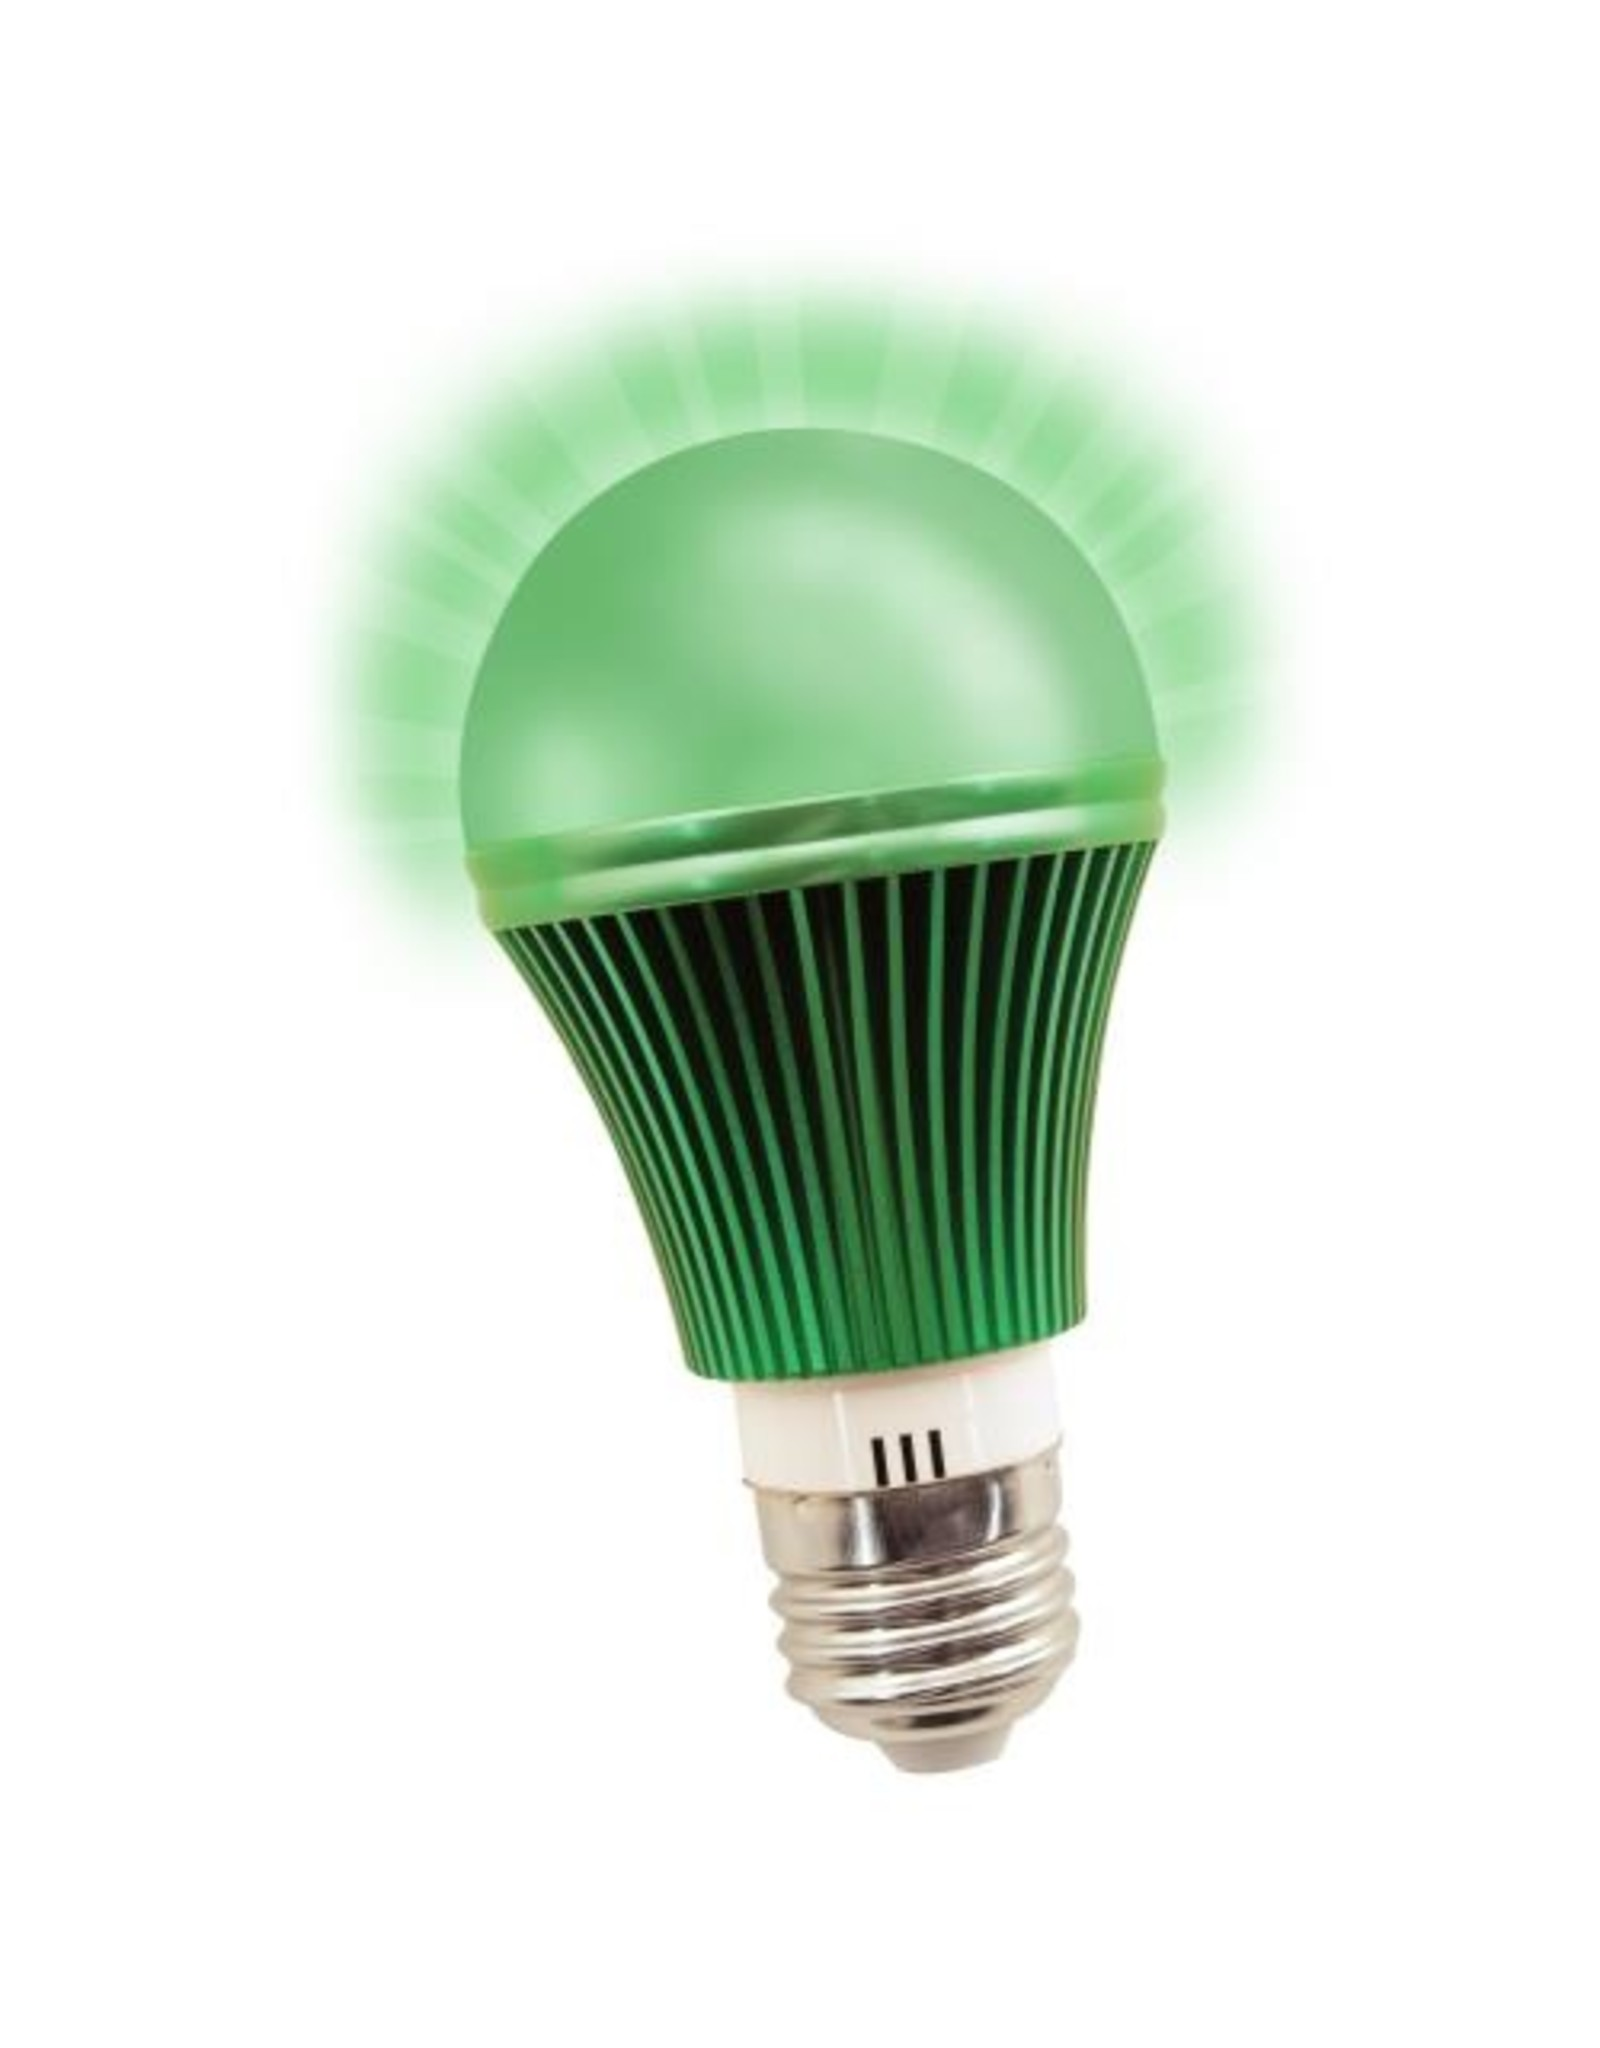 AgroLED Lamps AgroLED Green LED Night Light - 6 Watt